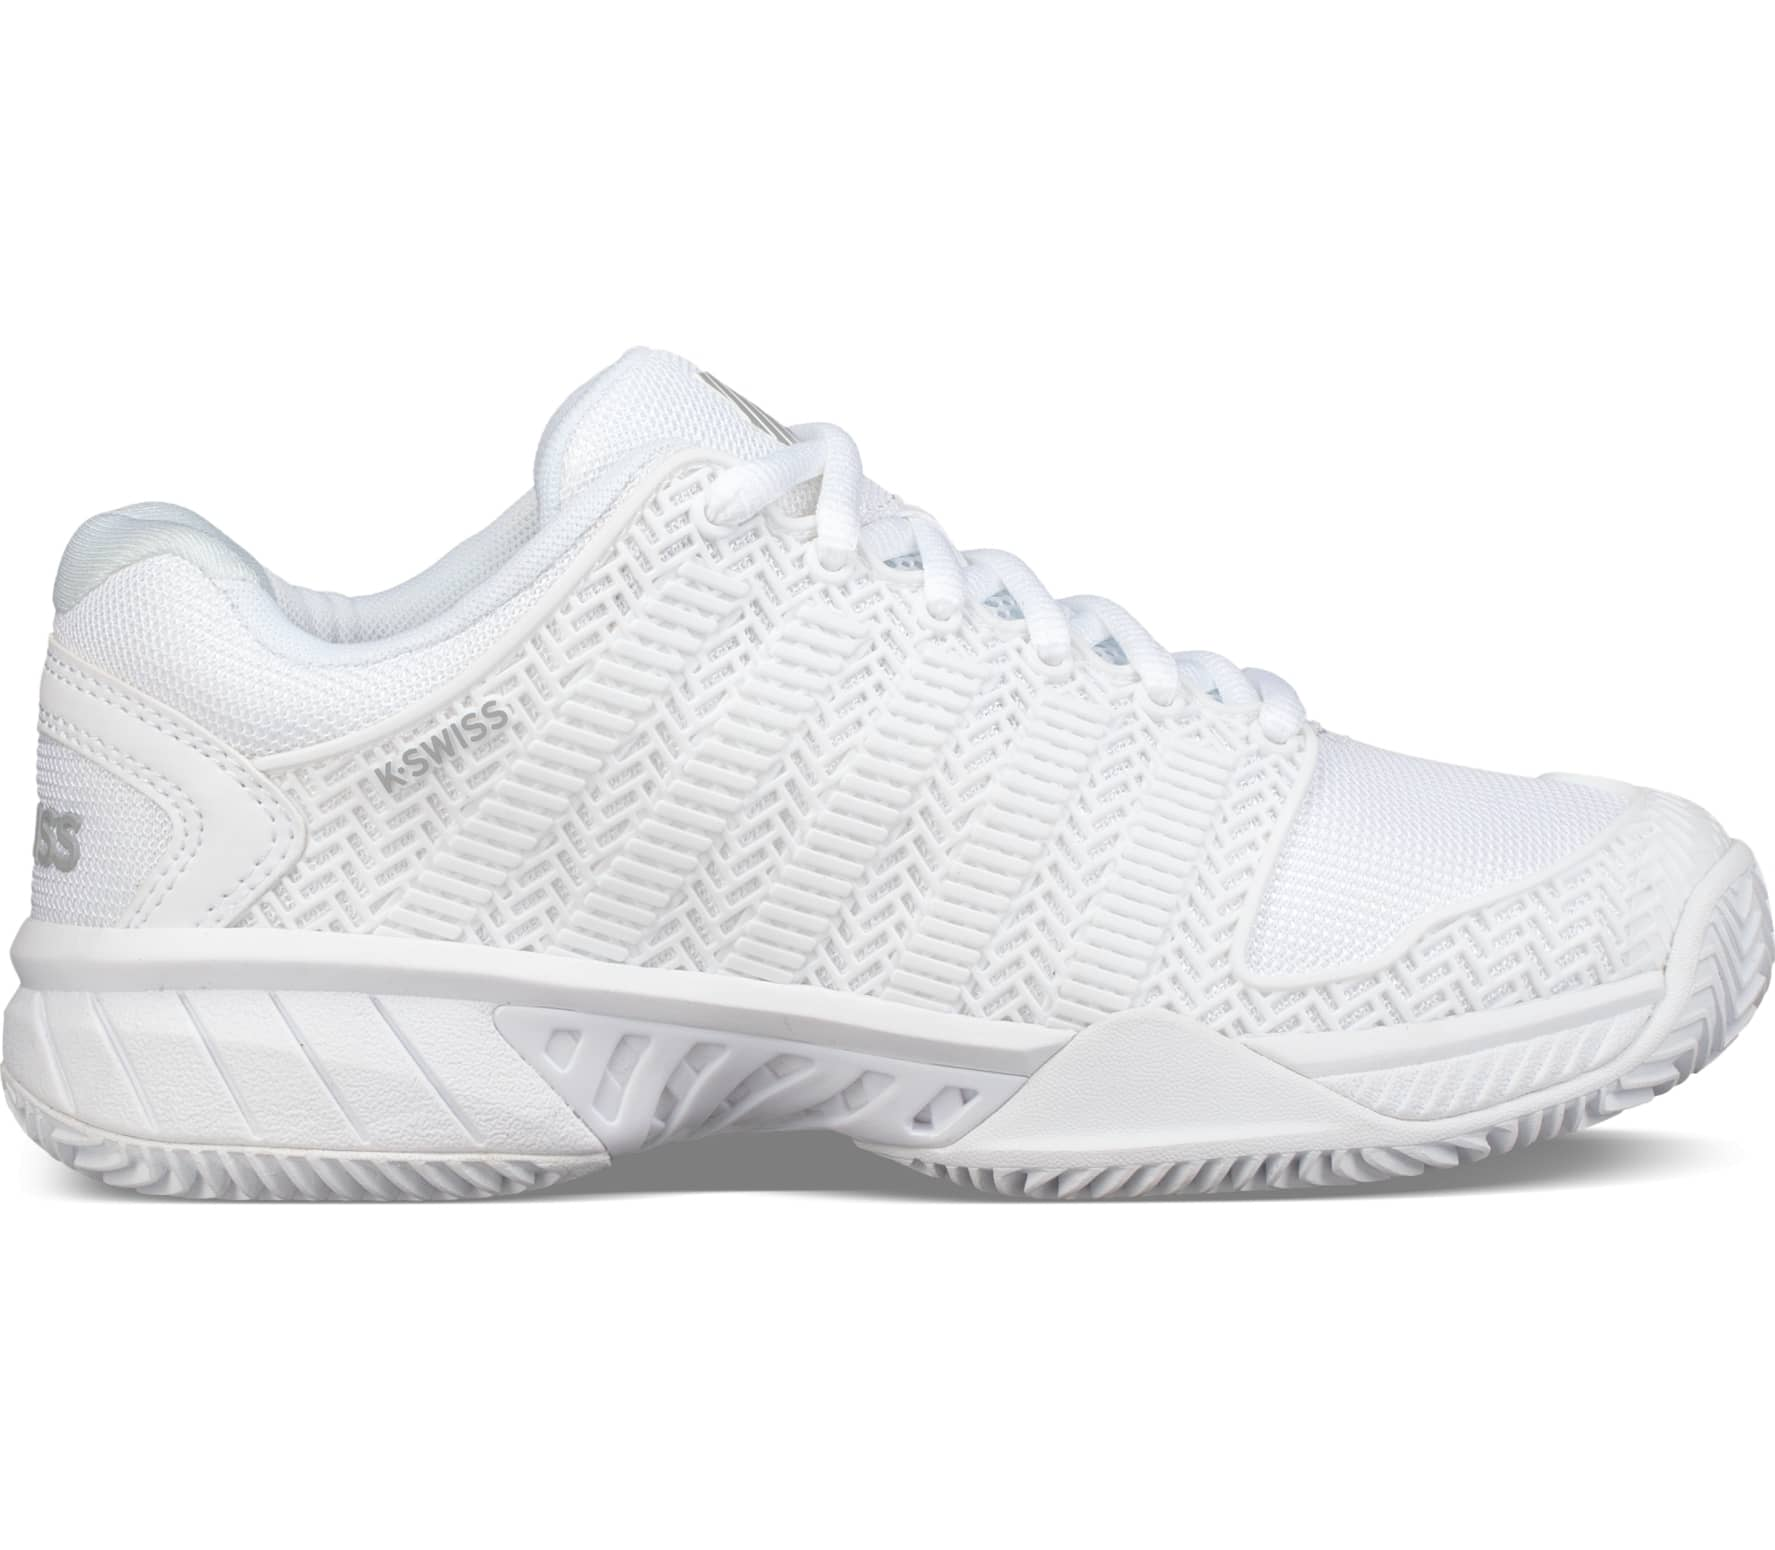 the best attitude 24537 4664e K-Swiss - Hypercourt Express Hb Special Edition women s tennis shoes  (white grey